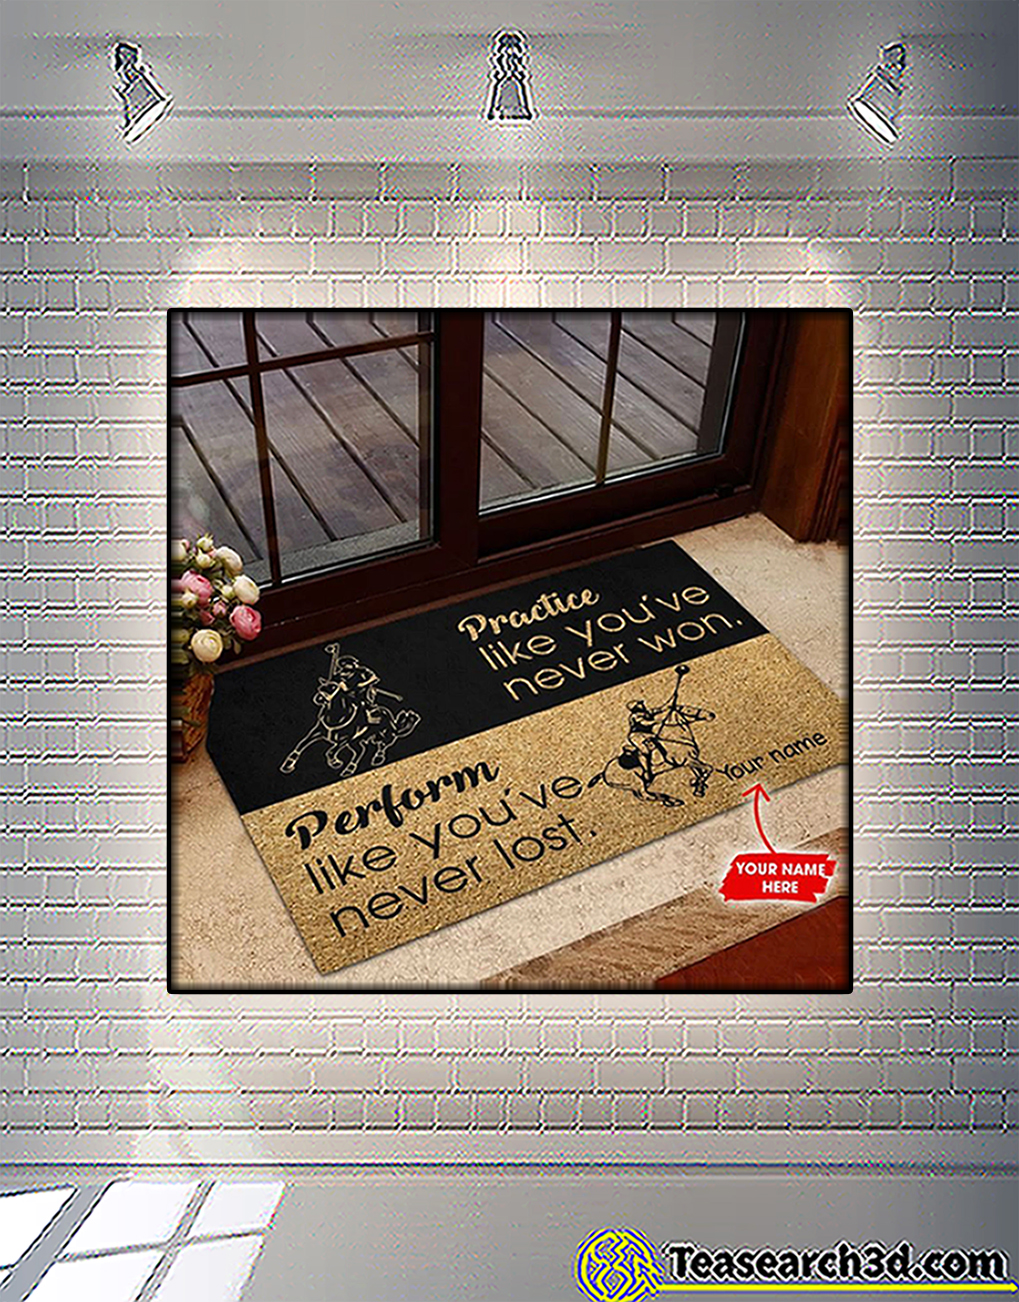 Personalized custom name polocrosse practice like you've never won doormat